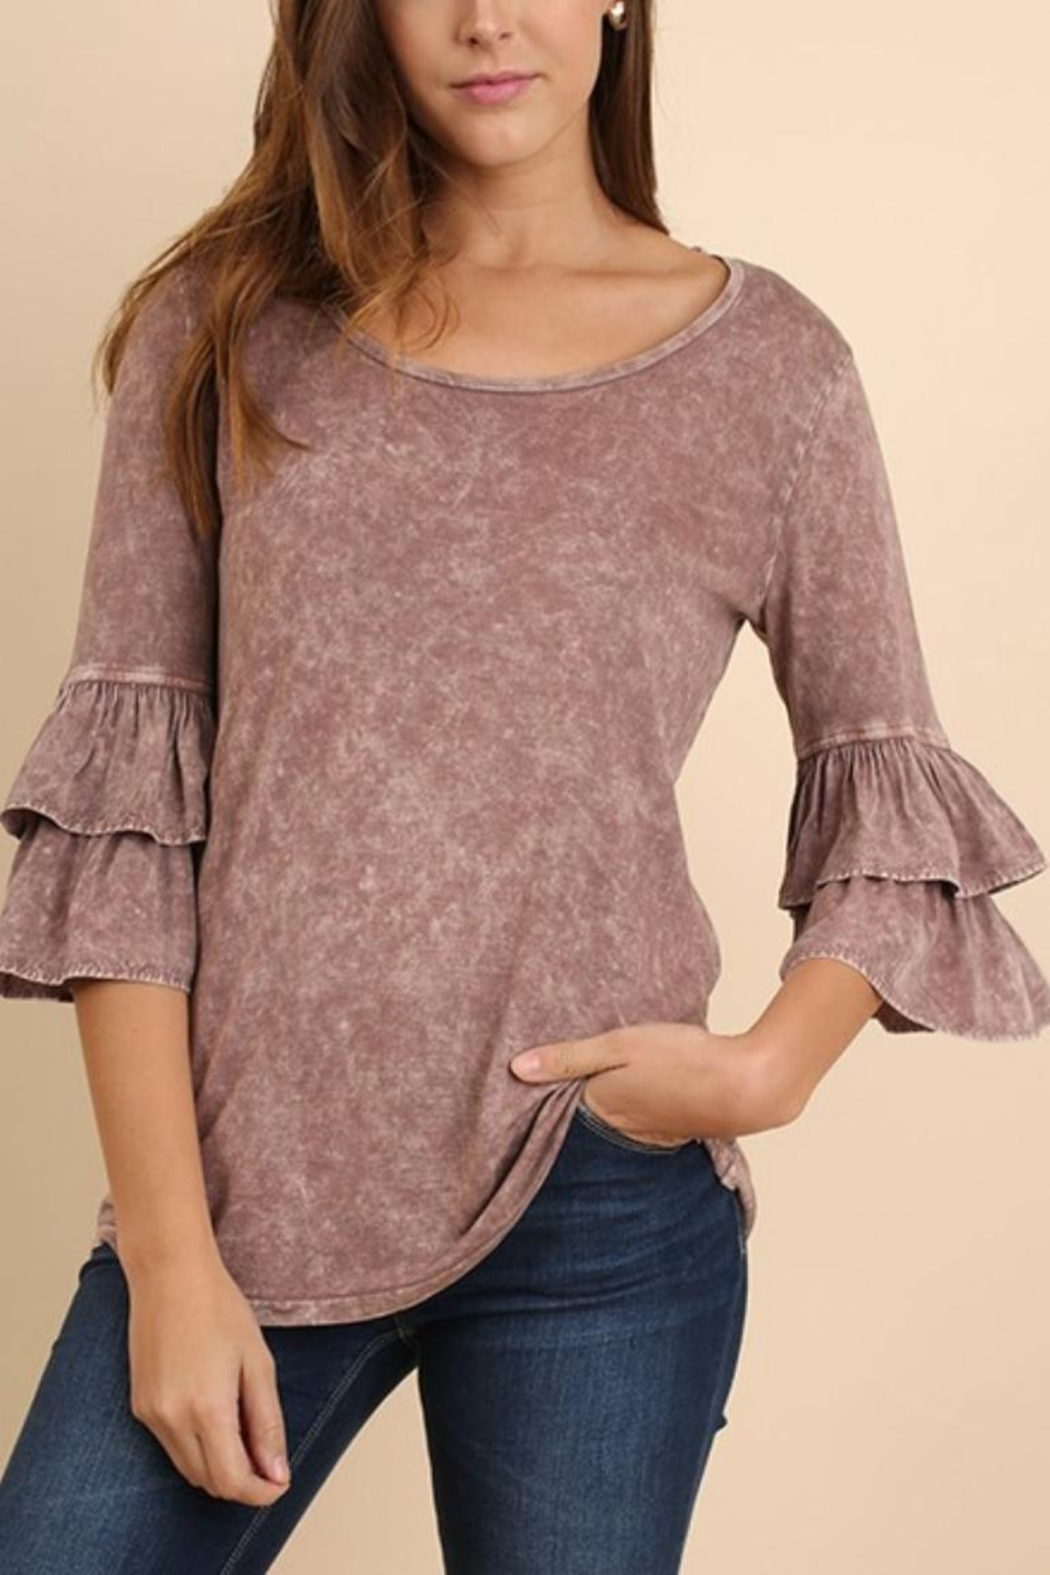 Umgee USA Mineral-Washed Ruffle-Sleeved Top - Main Image